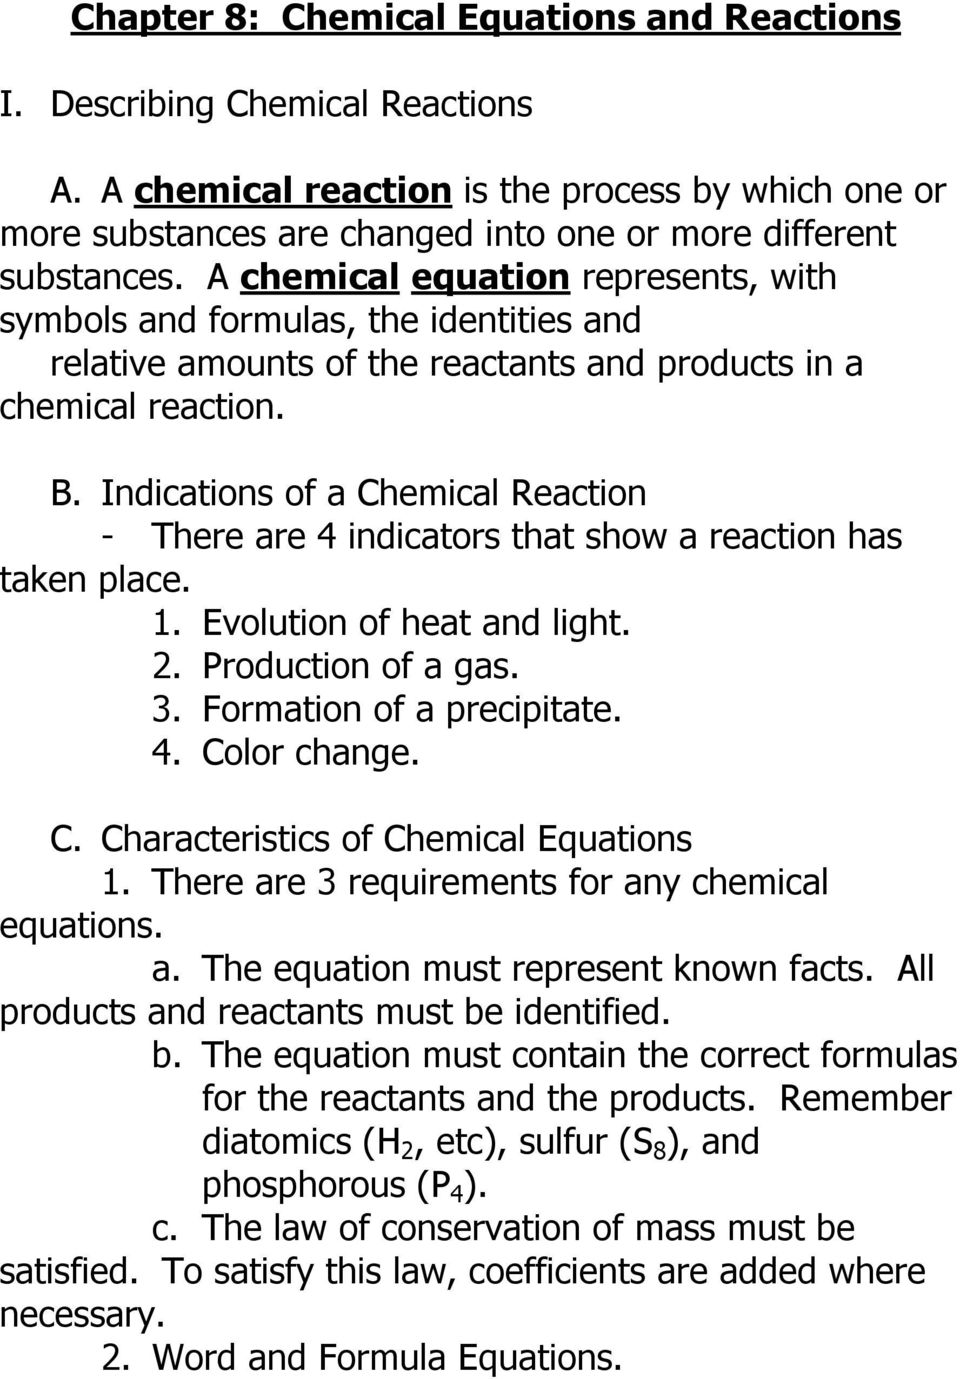 Indications of a Chemical Reaction - There are 4 indicators that show a reaction has taken place. 1. Evolution of heat and light. 2. Production of a gas. 3. Formation of a precipitate. 4. Color change.